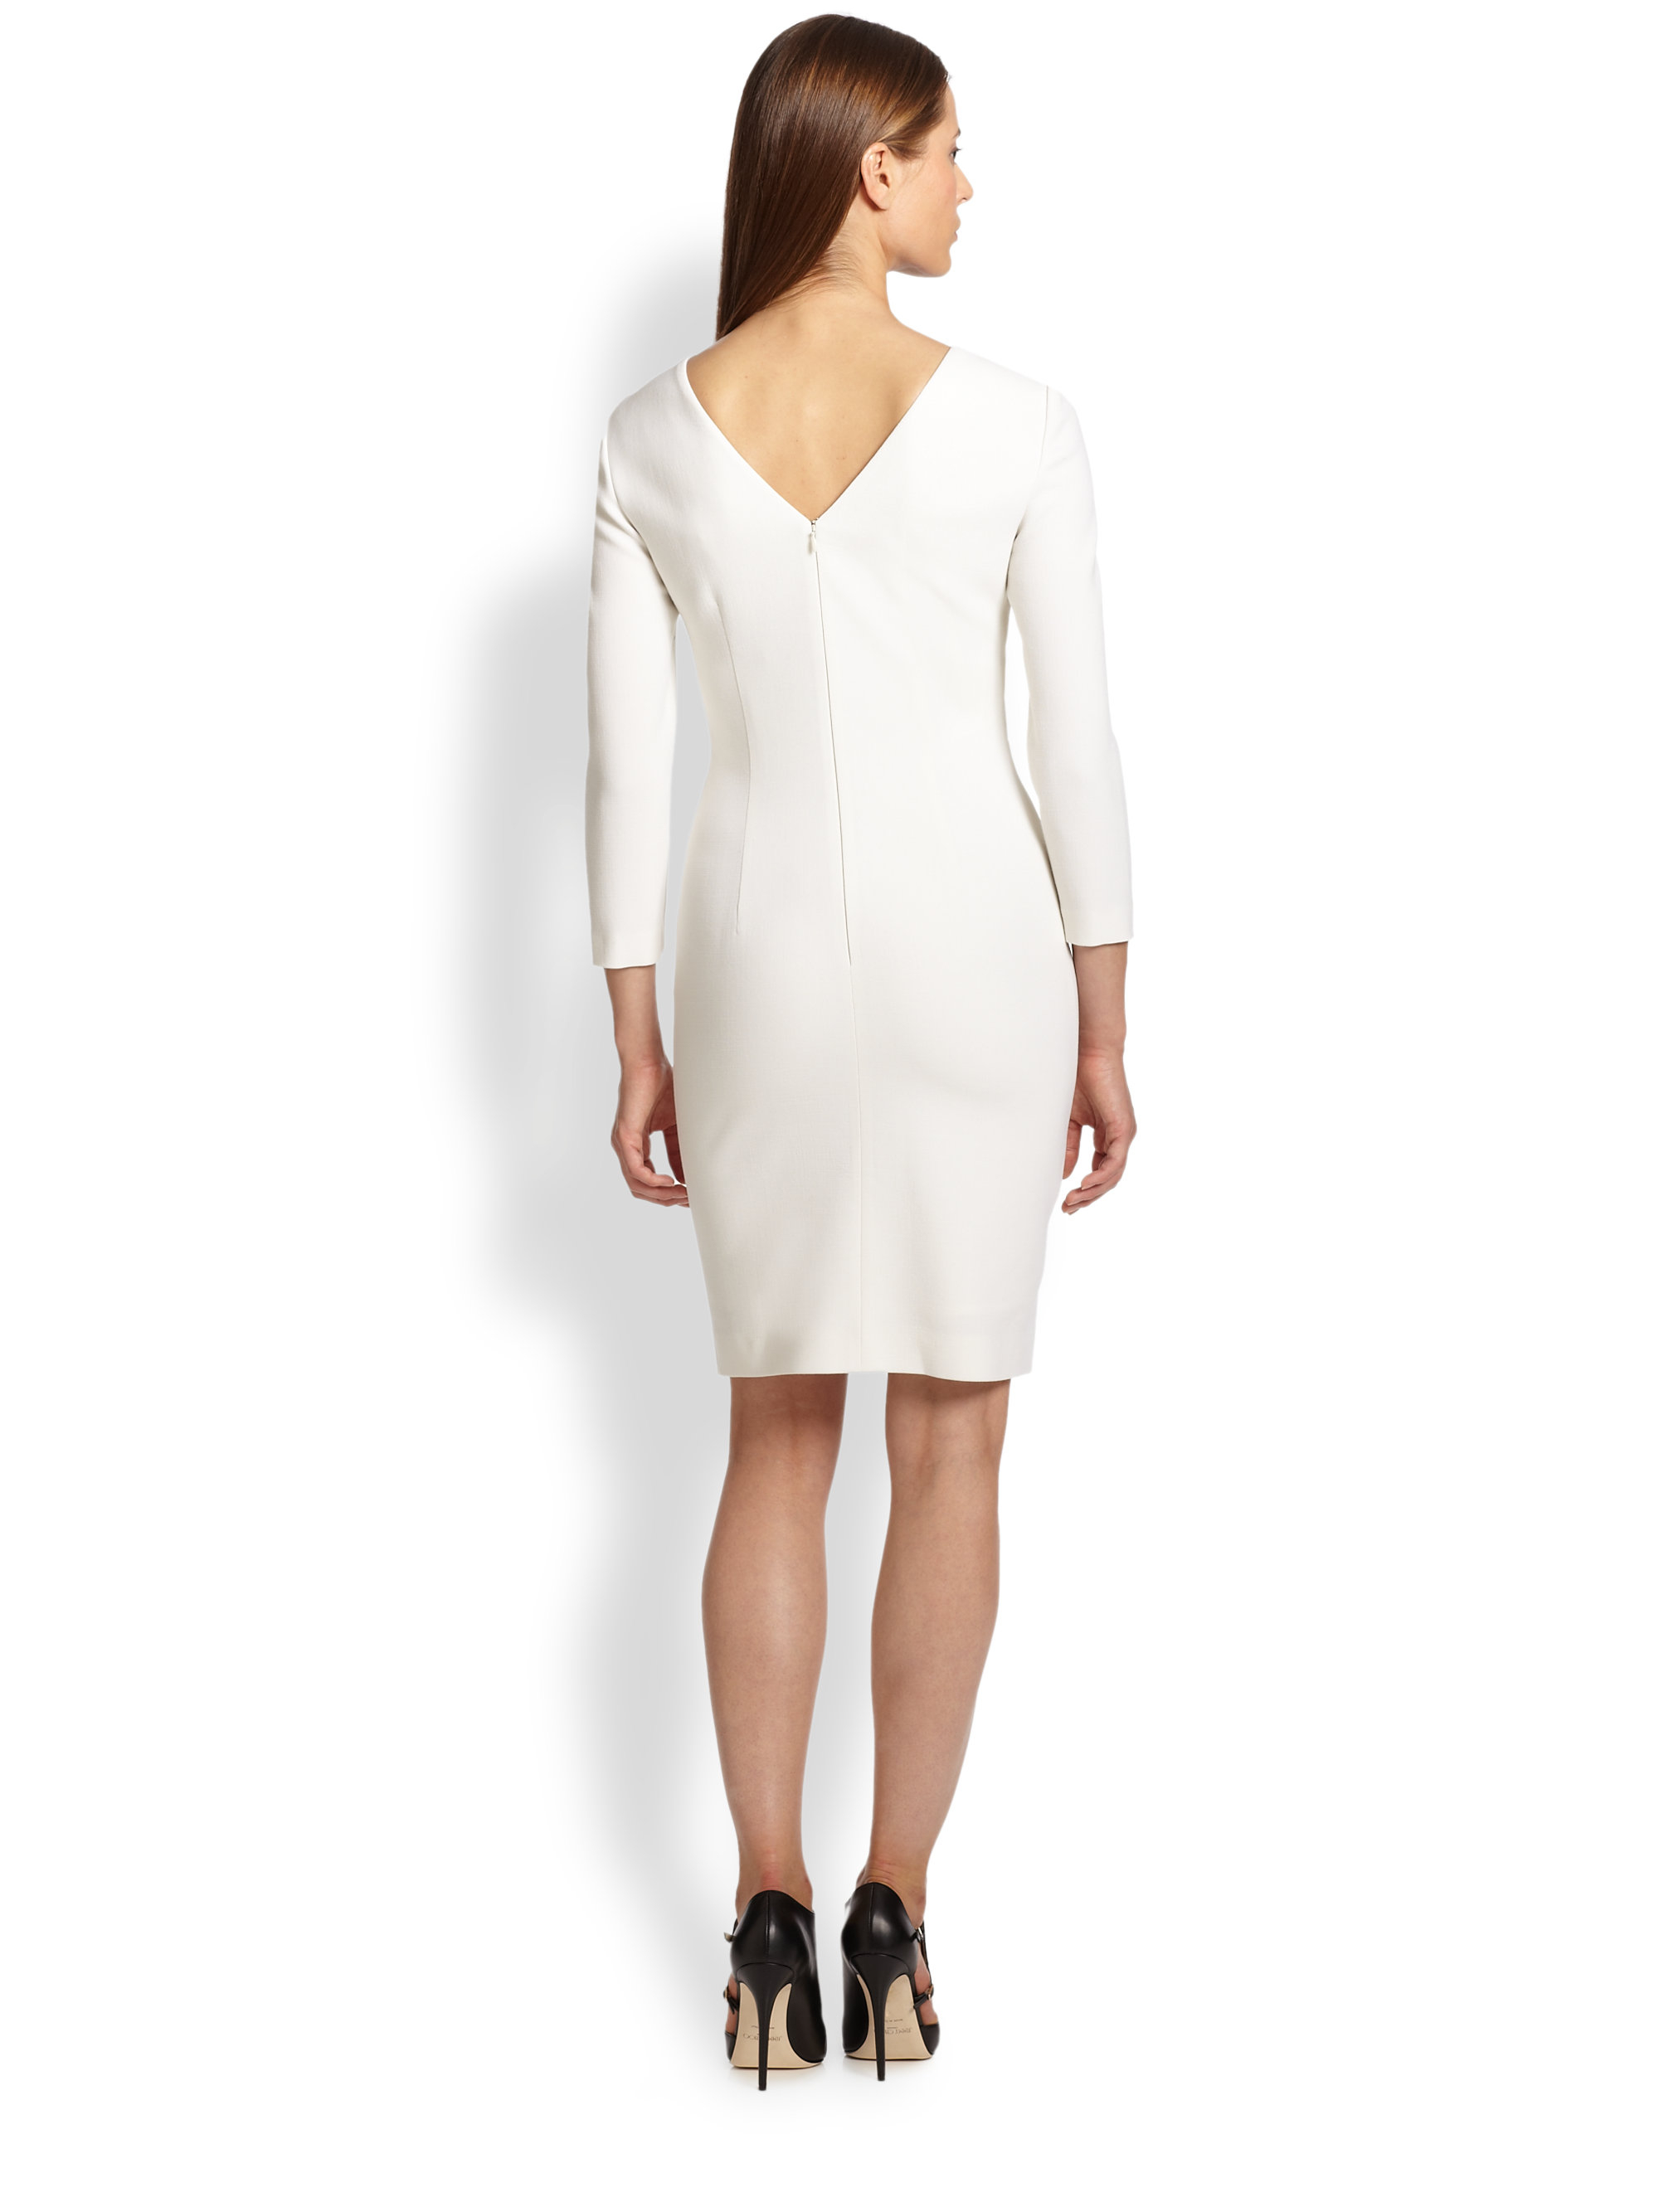 Emilio pucci Ruched Stretch Wool Dress in White | Lyst